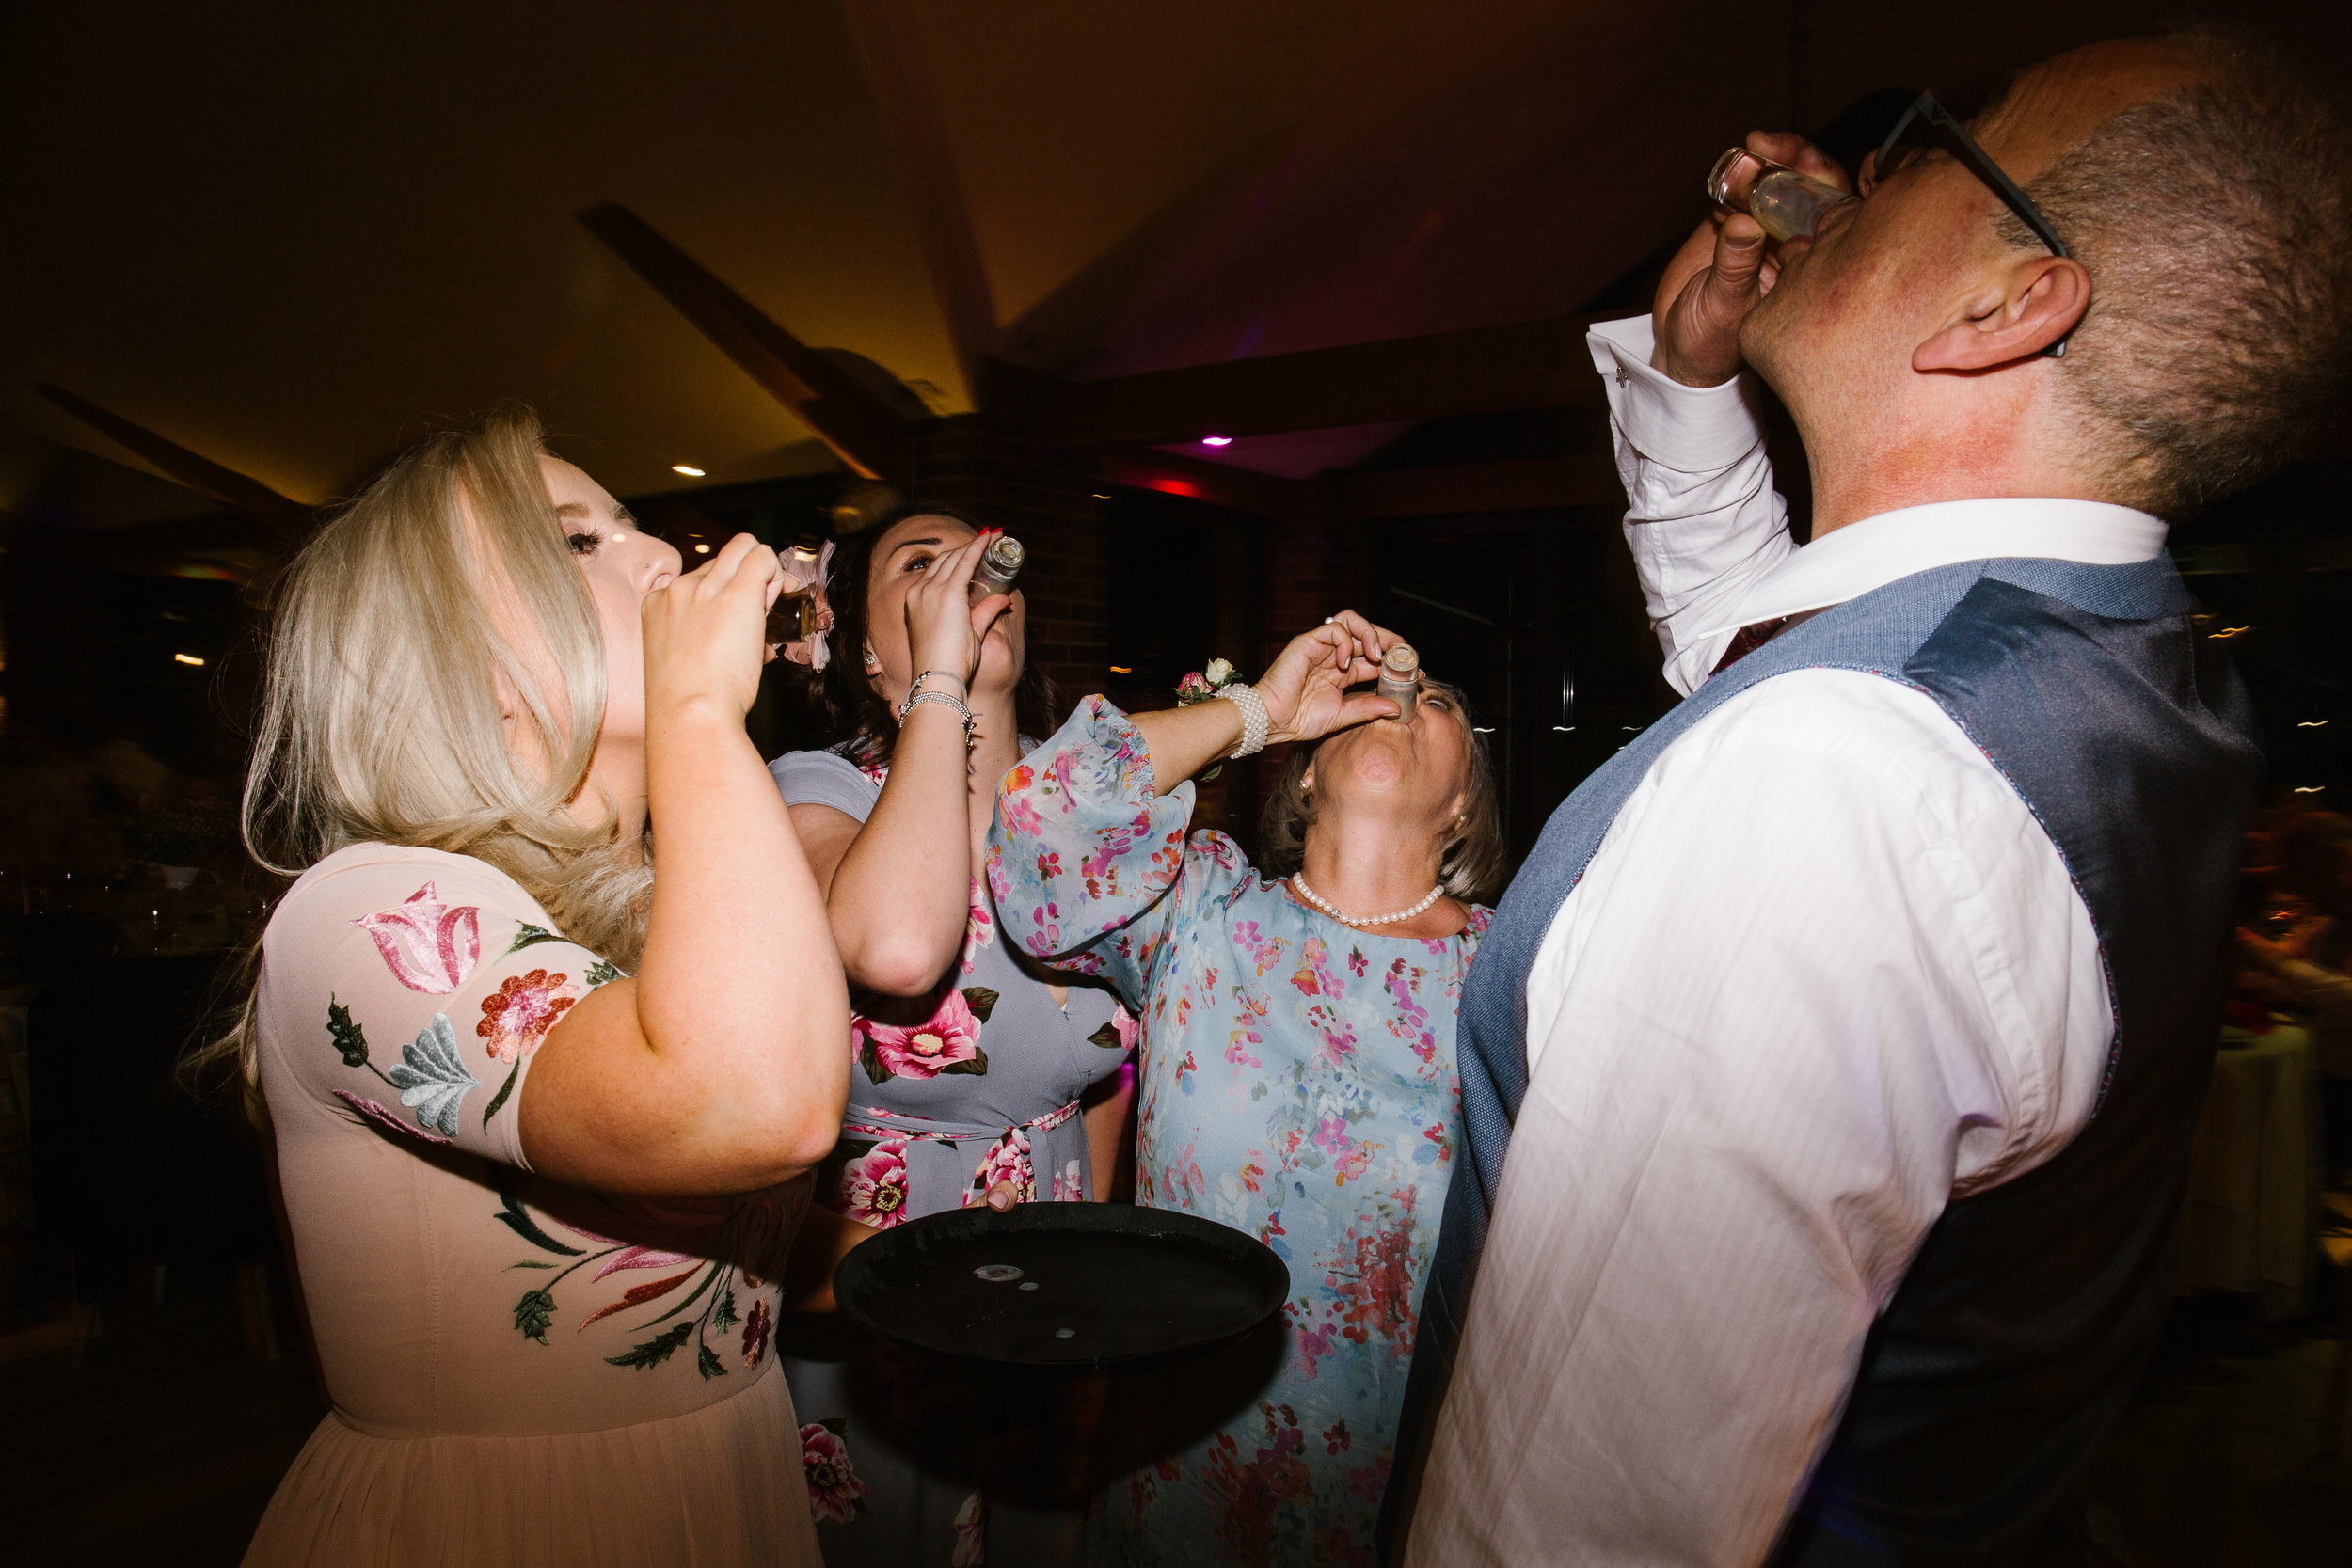 wedding guests and the mother of the bride doing shots on the dance floor at the wedding party